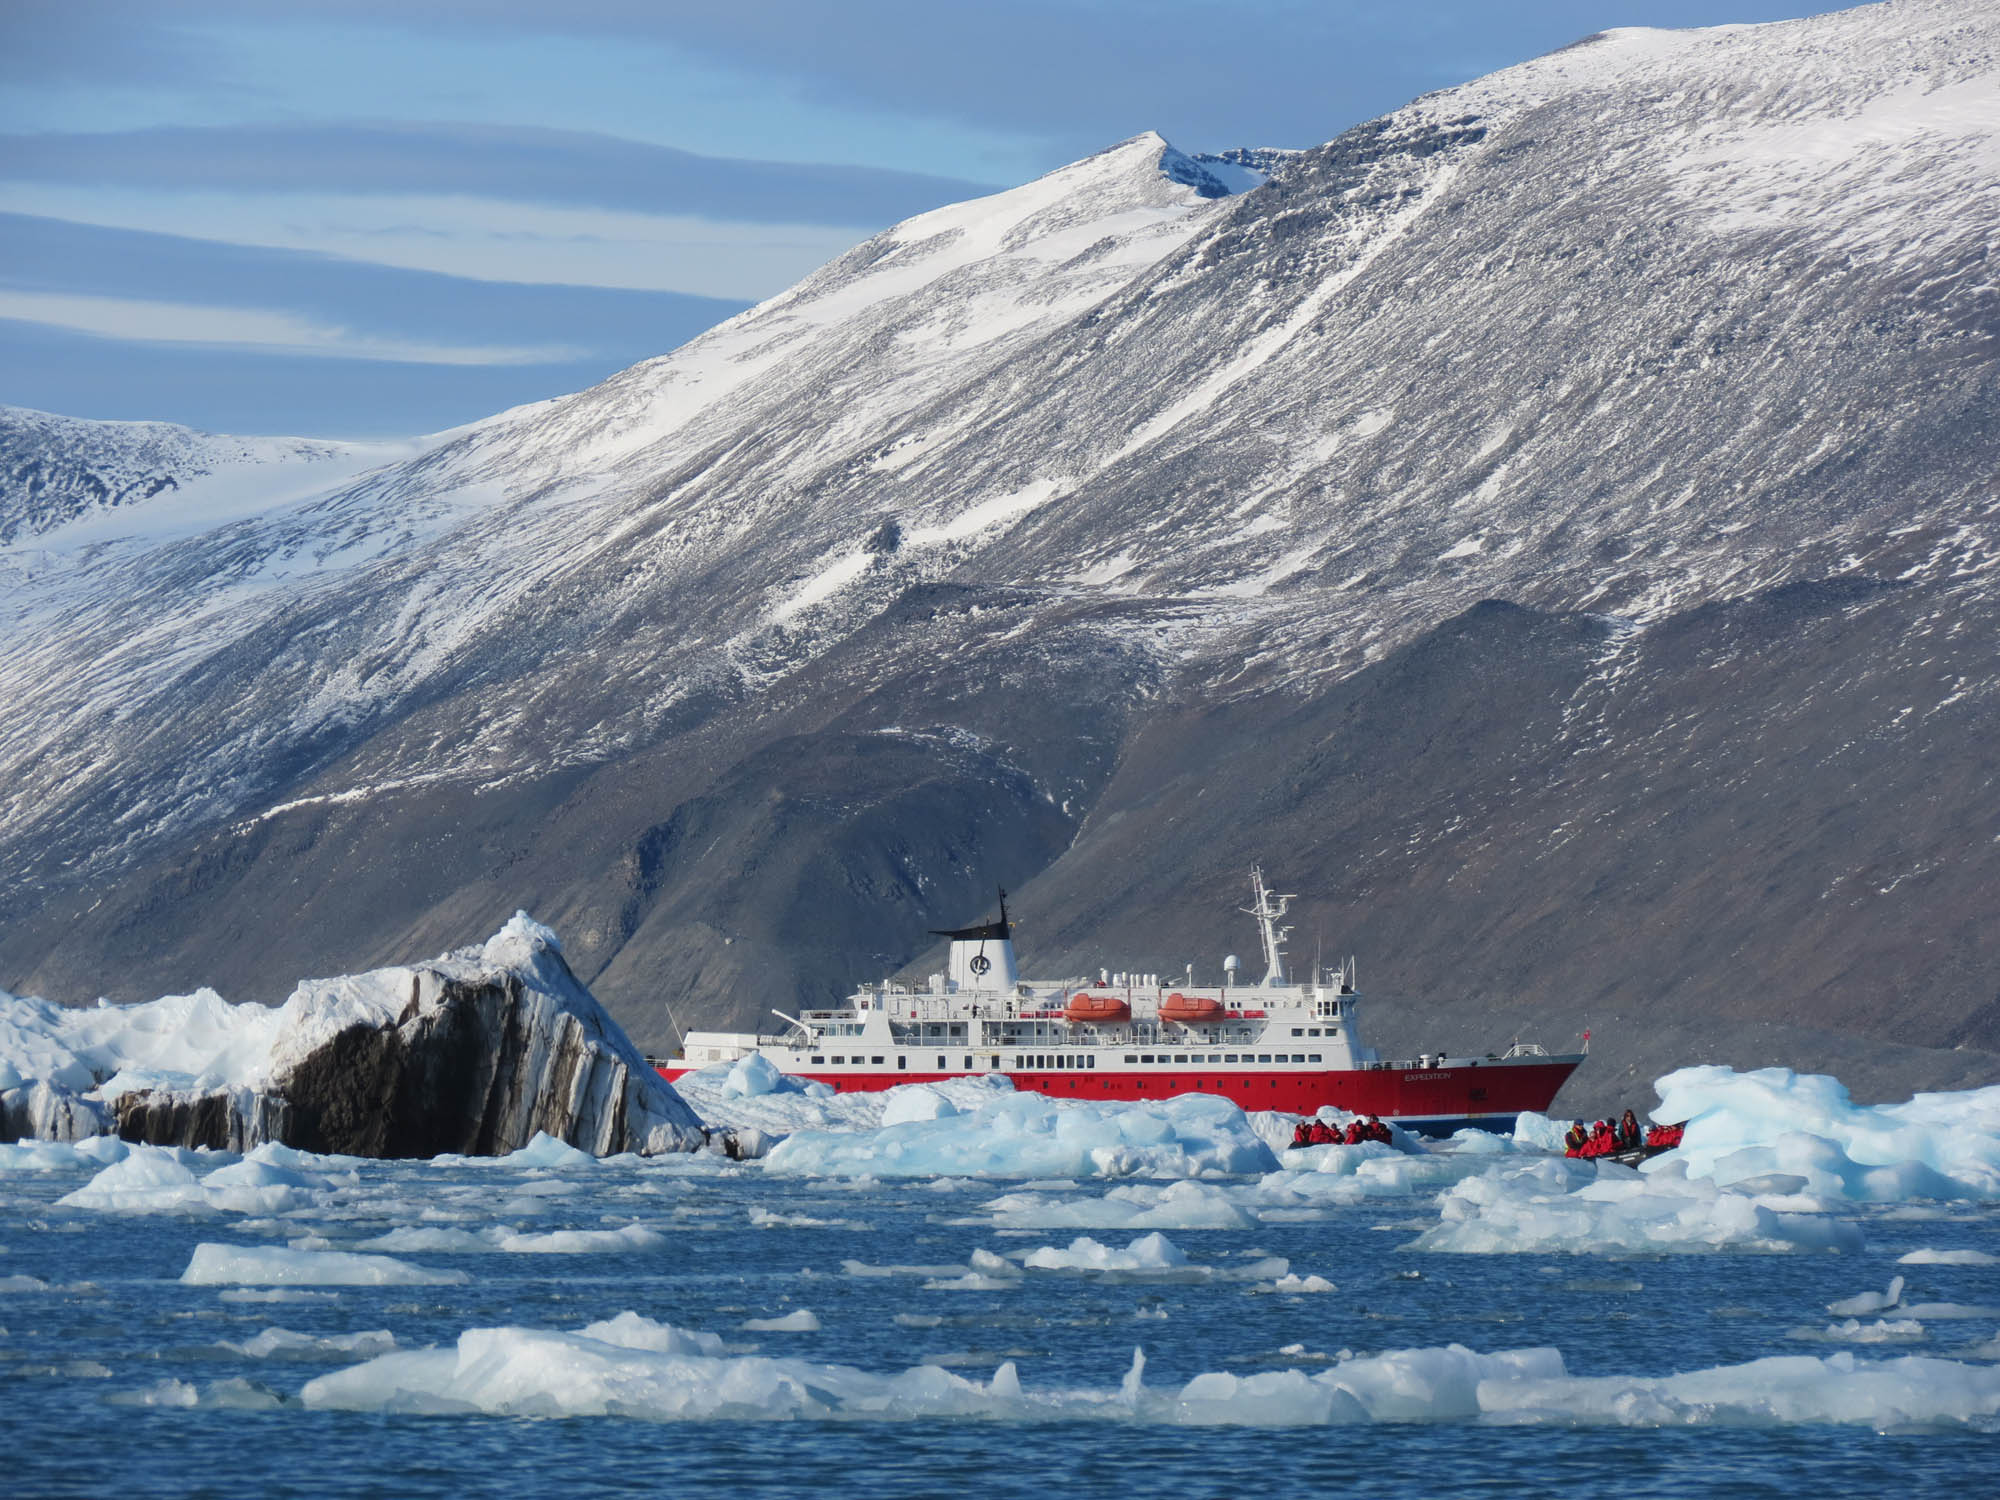 Ice Strengthened Expedition Ship in Monacobreen, Spitsbergen - Jen Squire